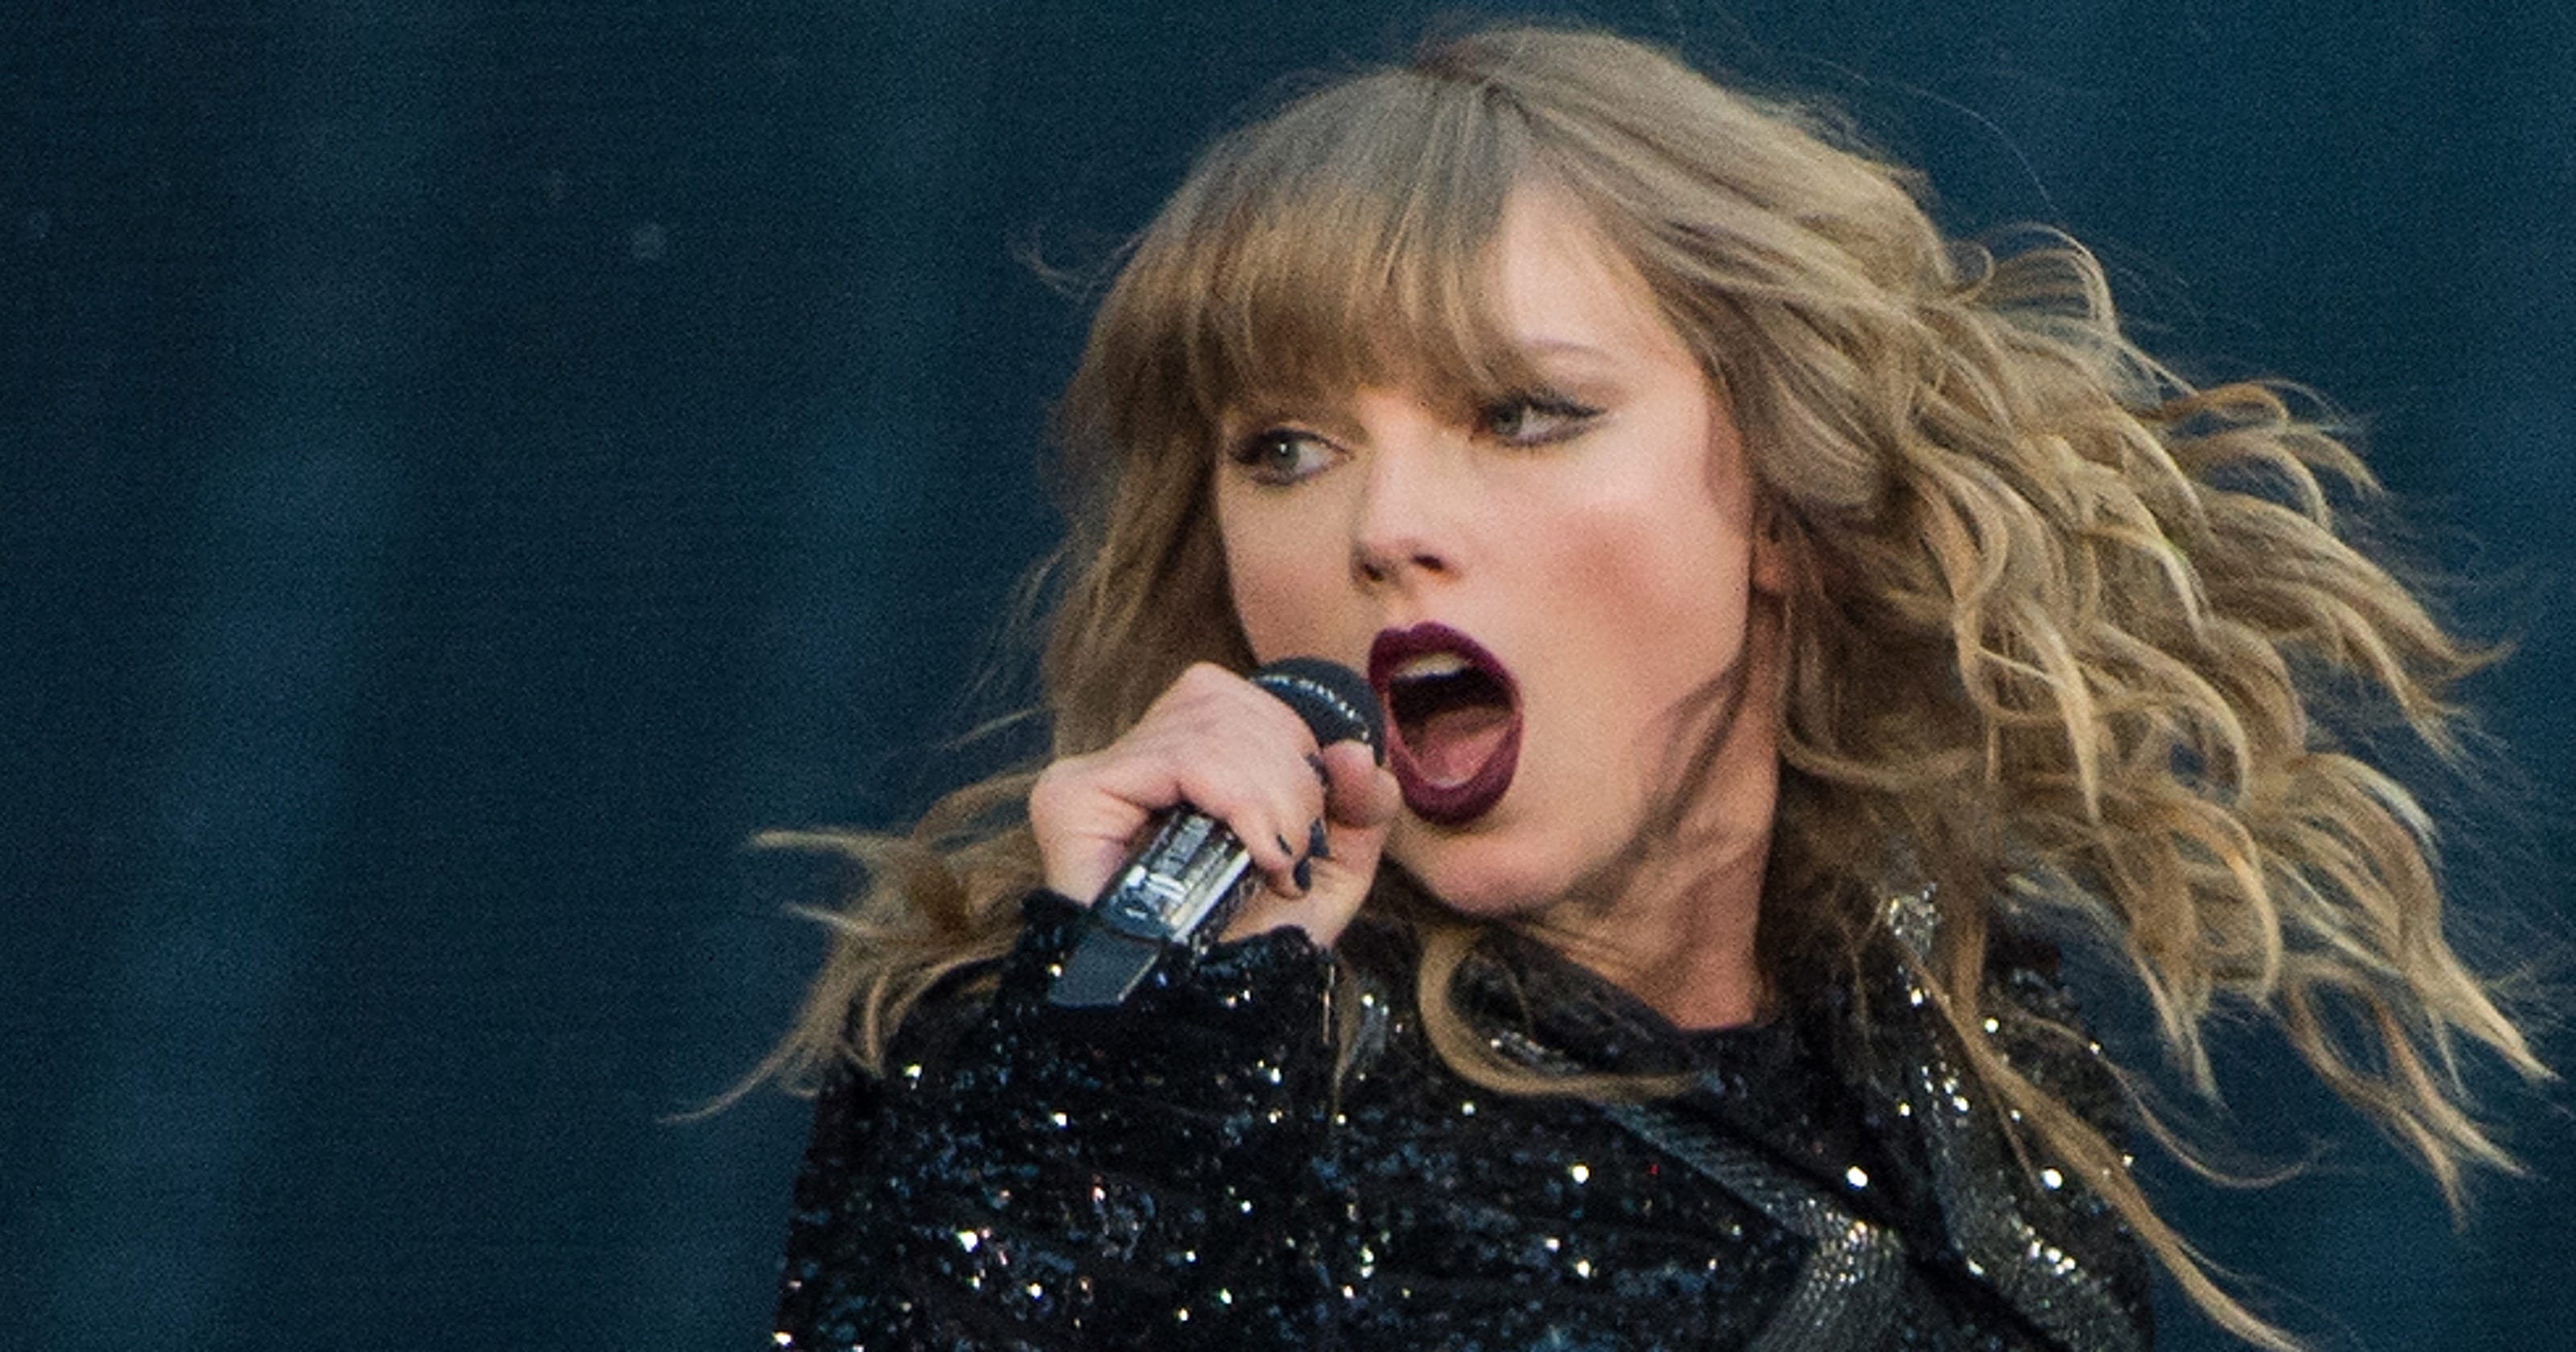 Taylor Swift Is Hilariously Shocked When Fan Proposes At Her Show